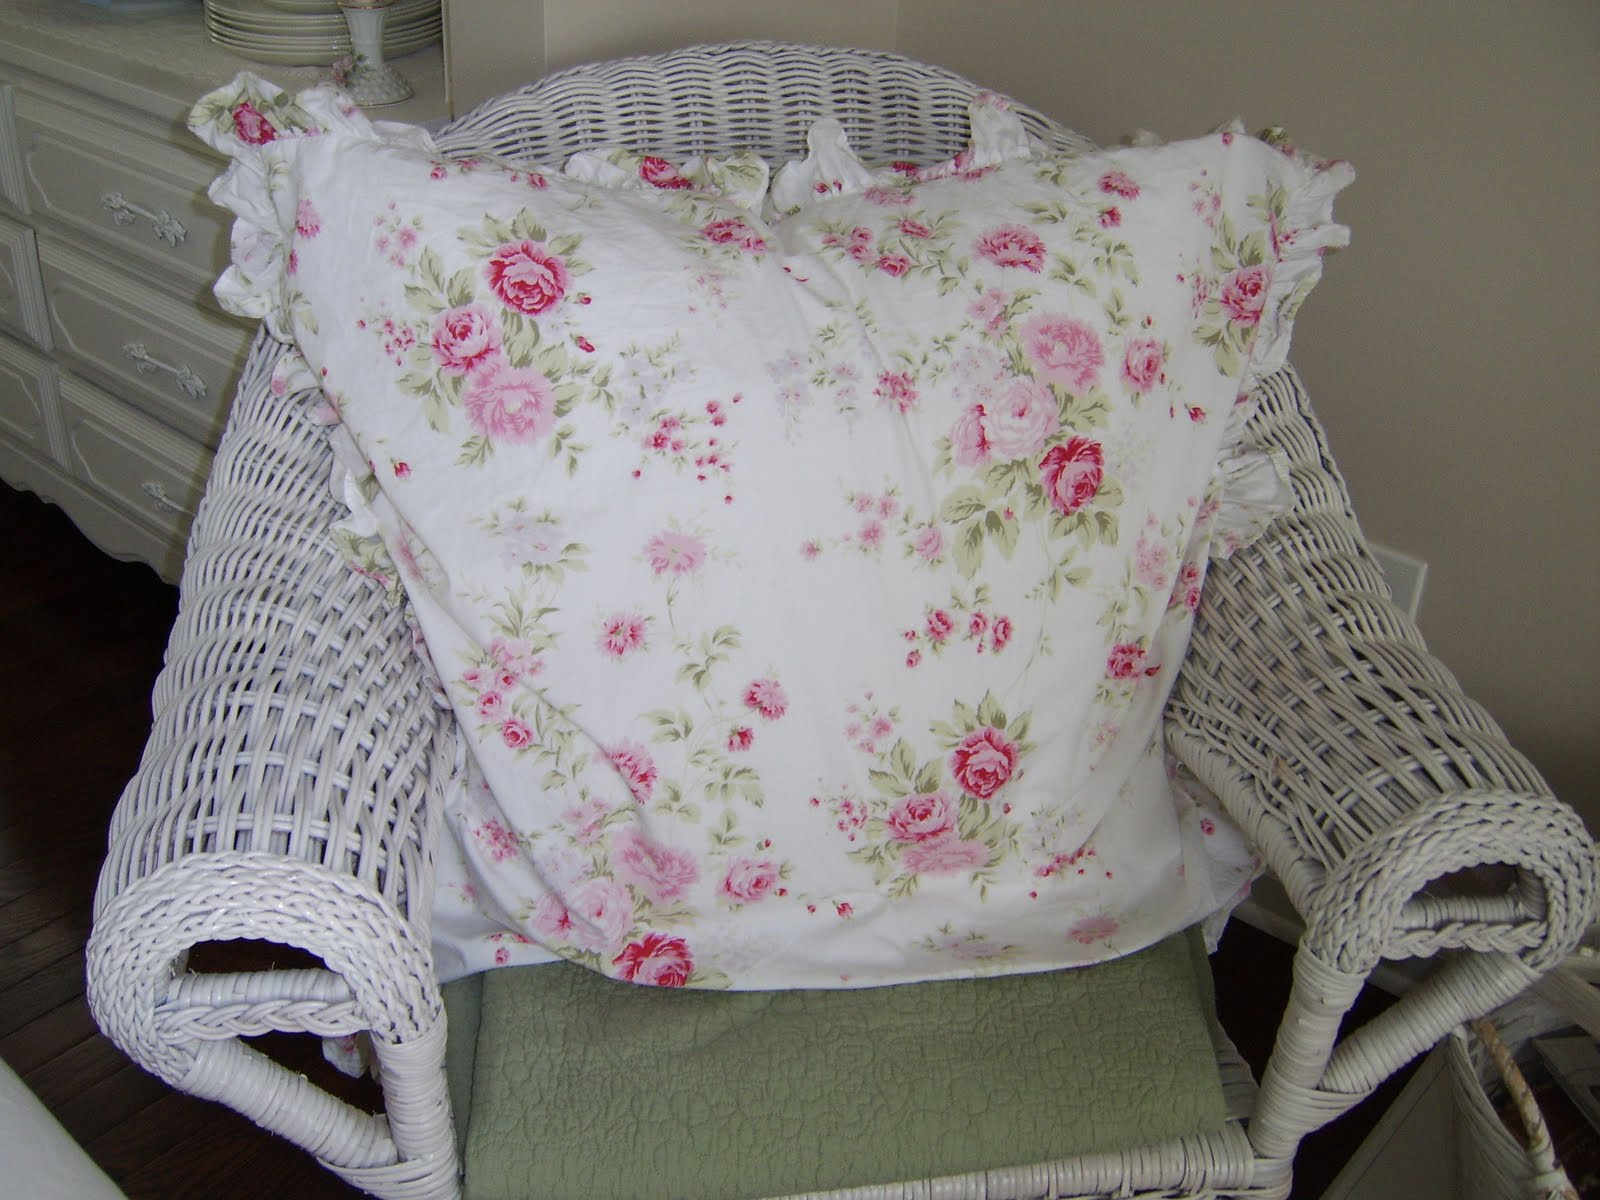 Shabby Chic Pillow Images : Anything Shabby Chic: My Authentic Shabby Chic pillows